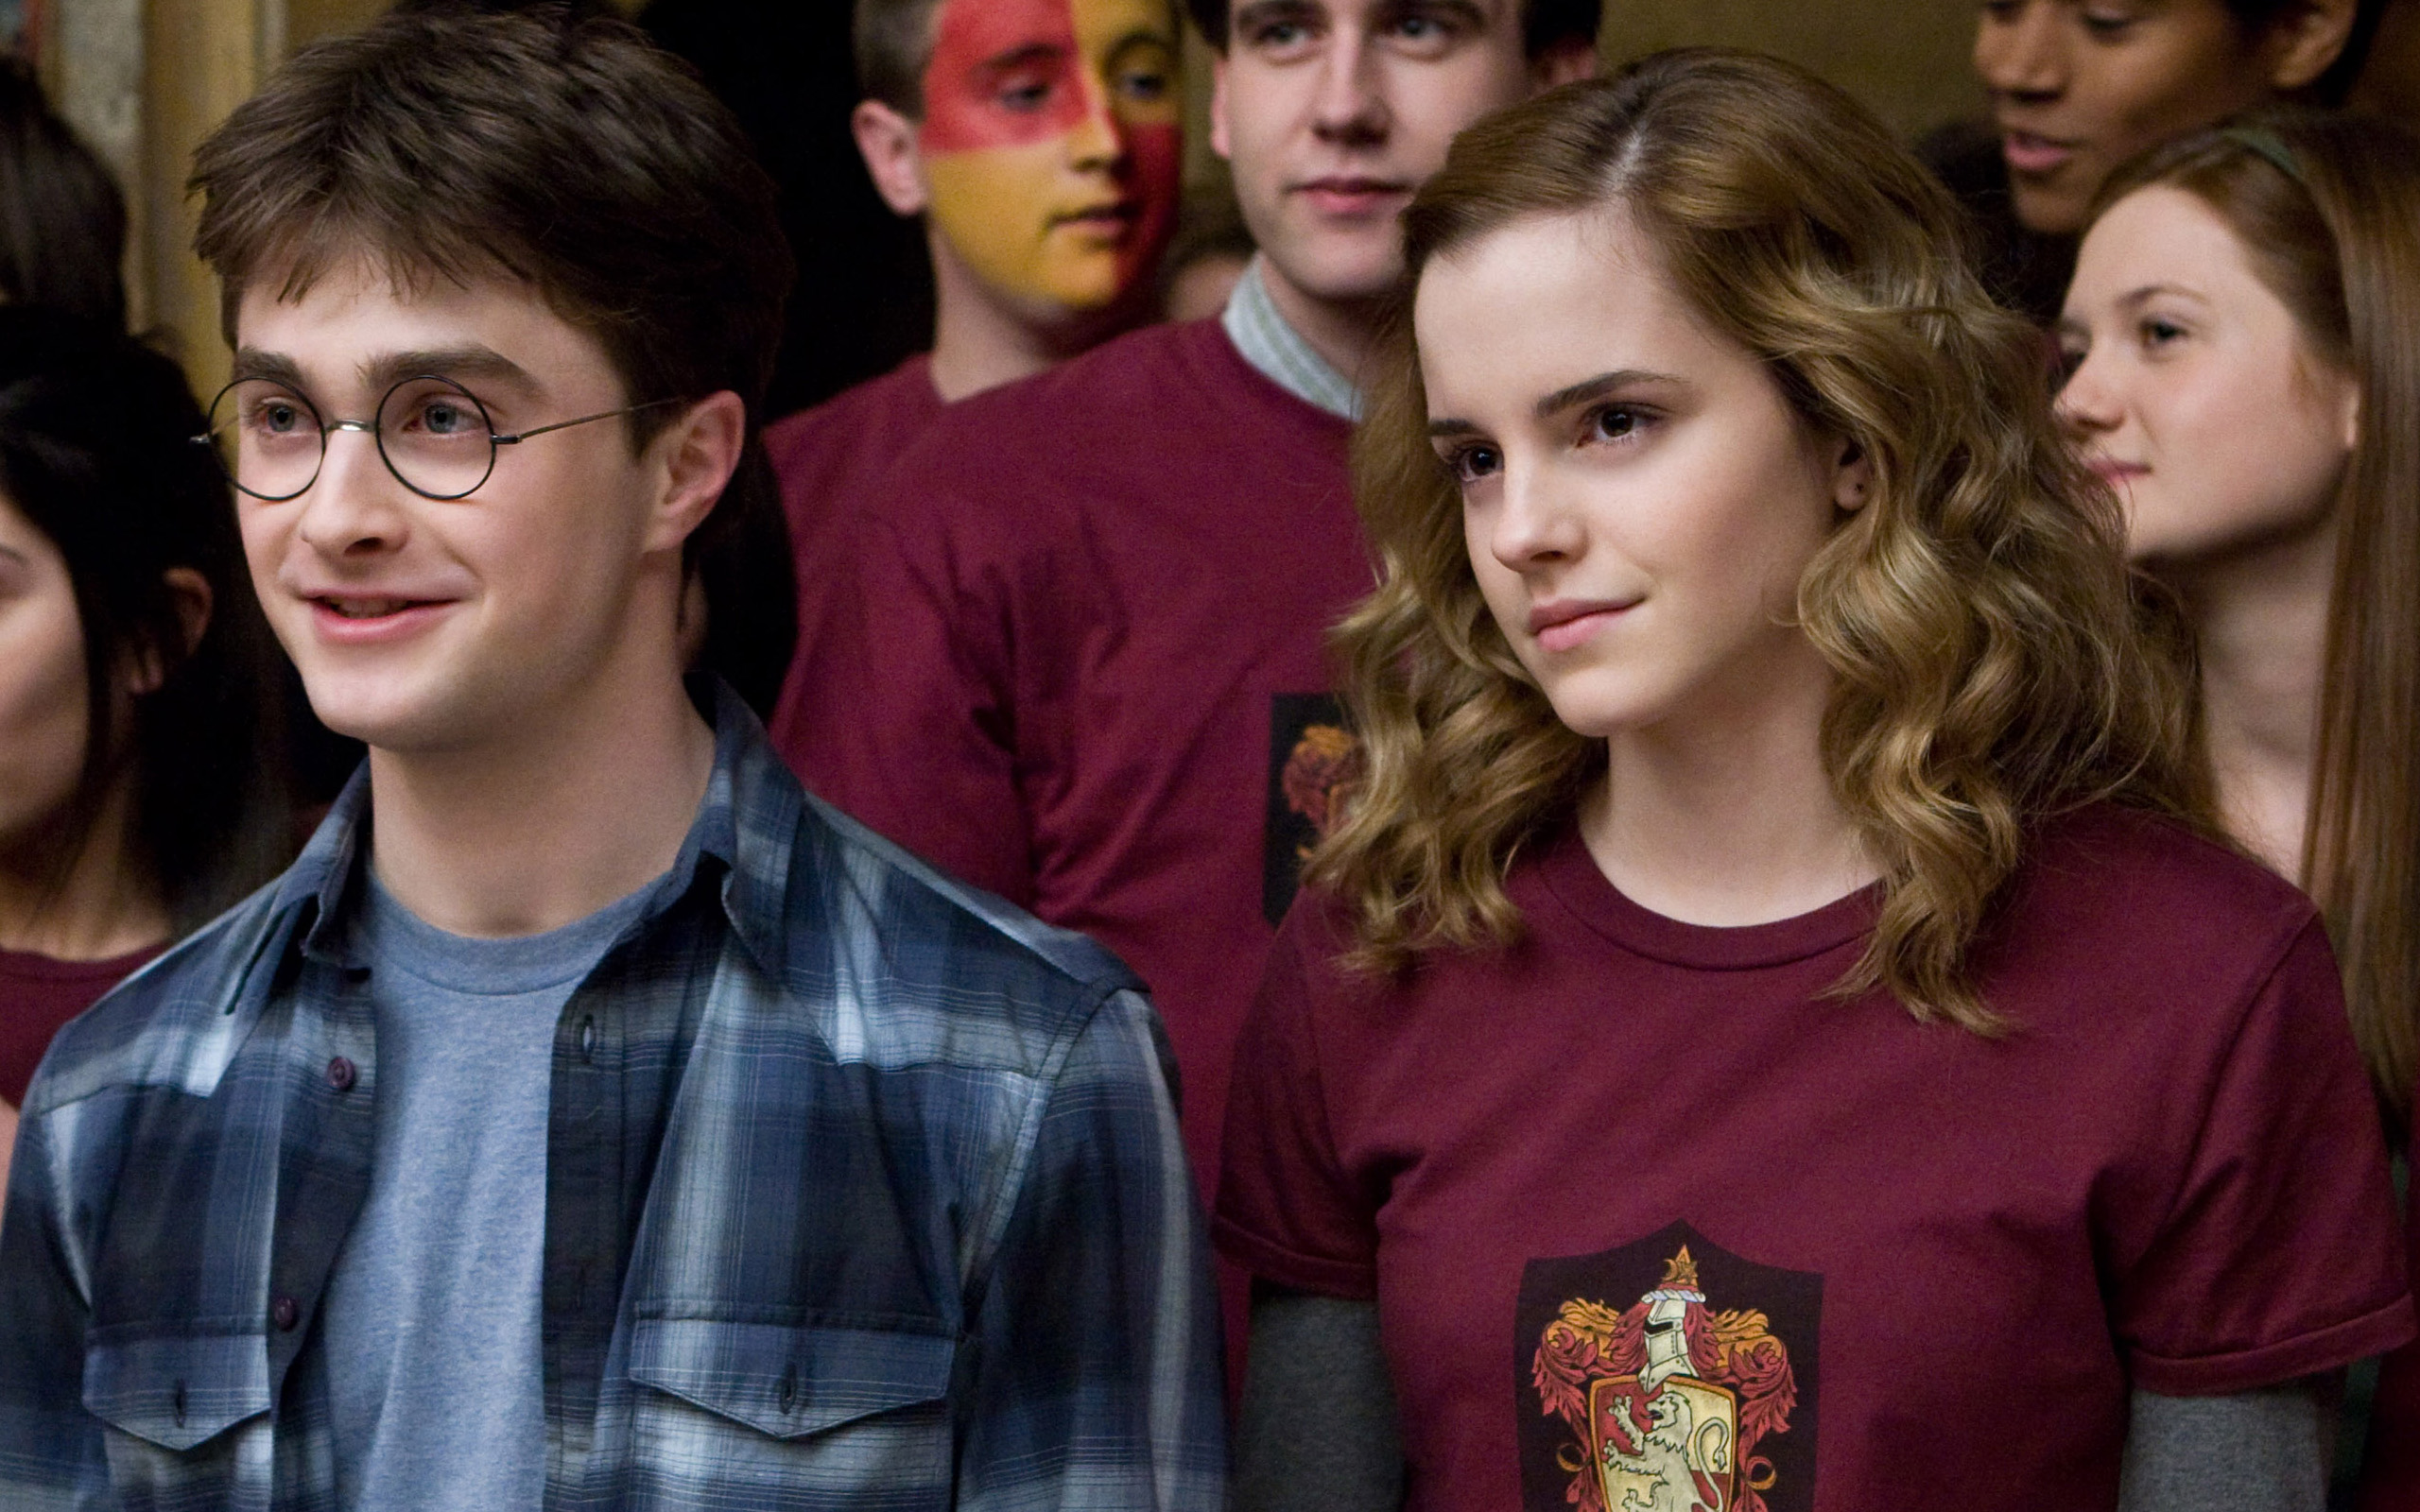 Best Wallpaper Harry Potter Facebook - emma_watson_in_harry_potter_6_new-widescreen_wallpapers  Graphic_15281.jpg